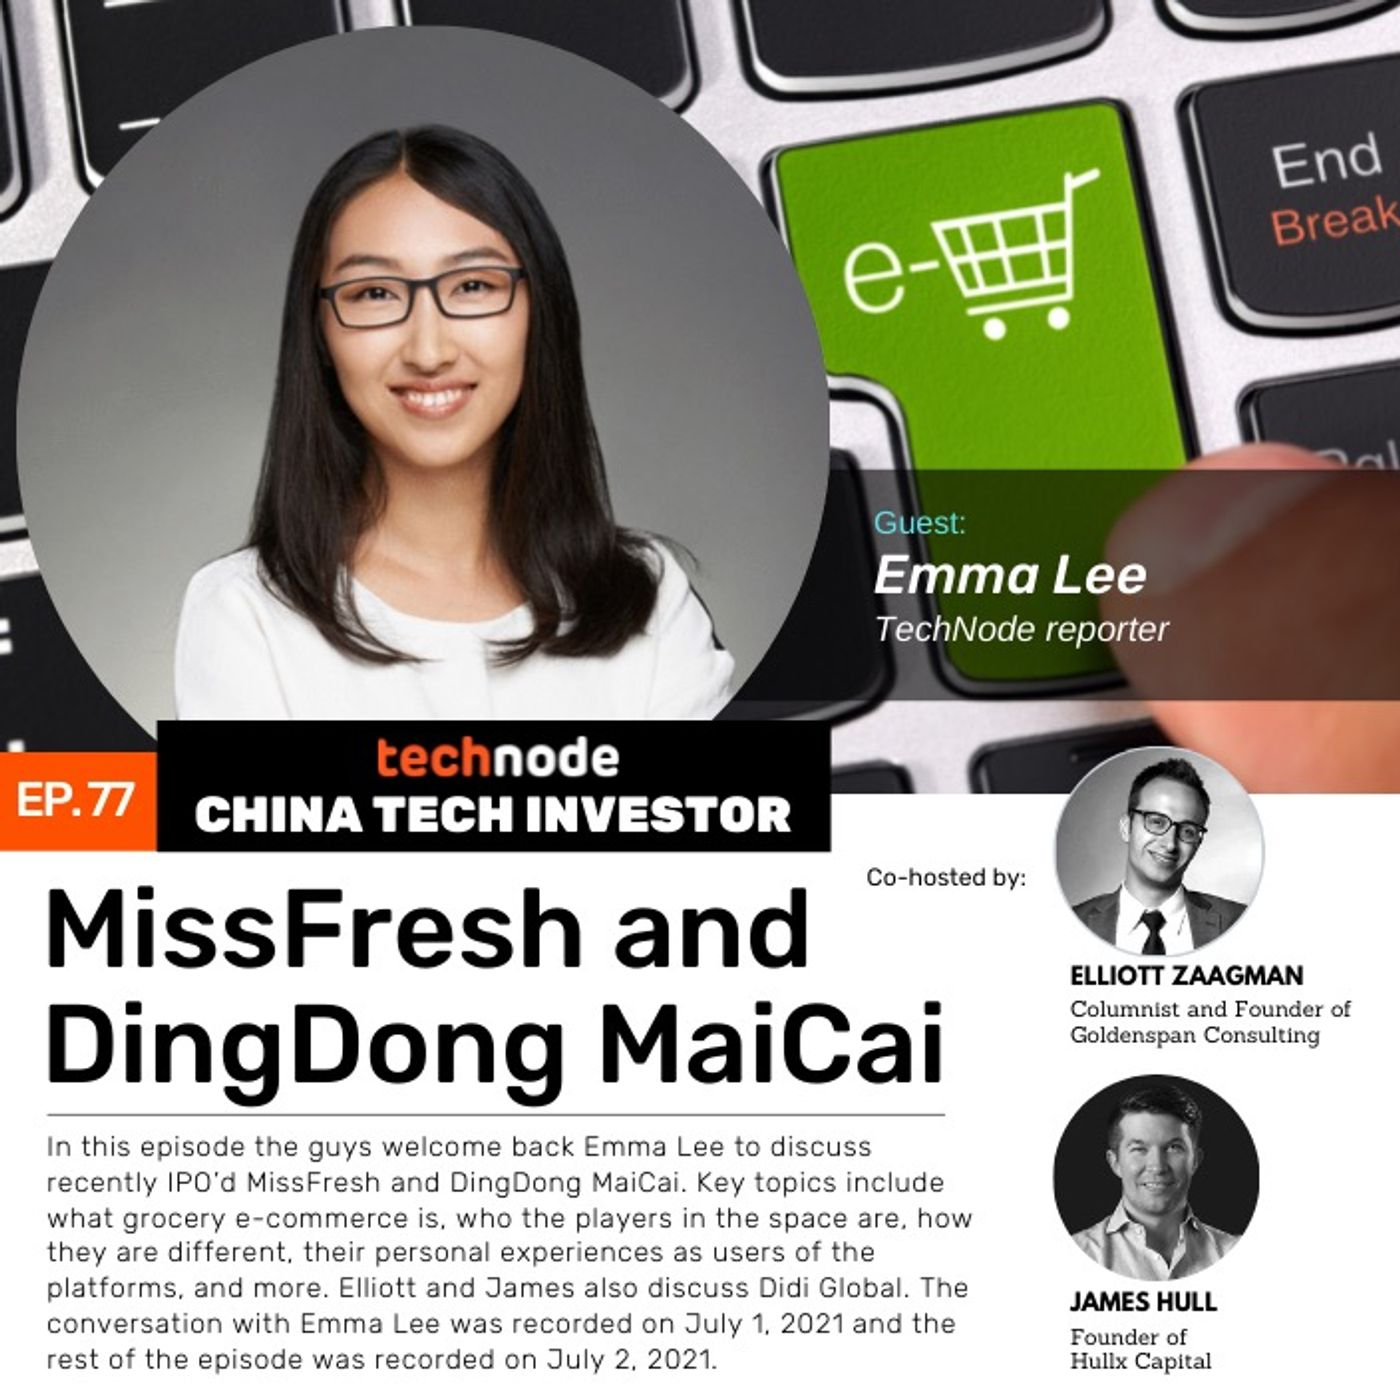 CTI 77: MissFresh and Dingdong Maicai, with Emma Lee